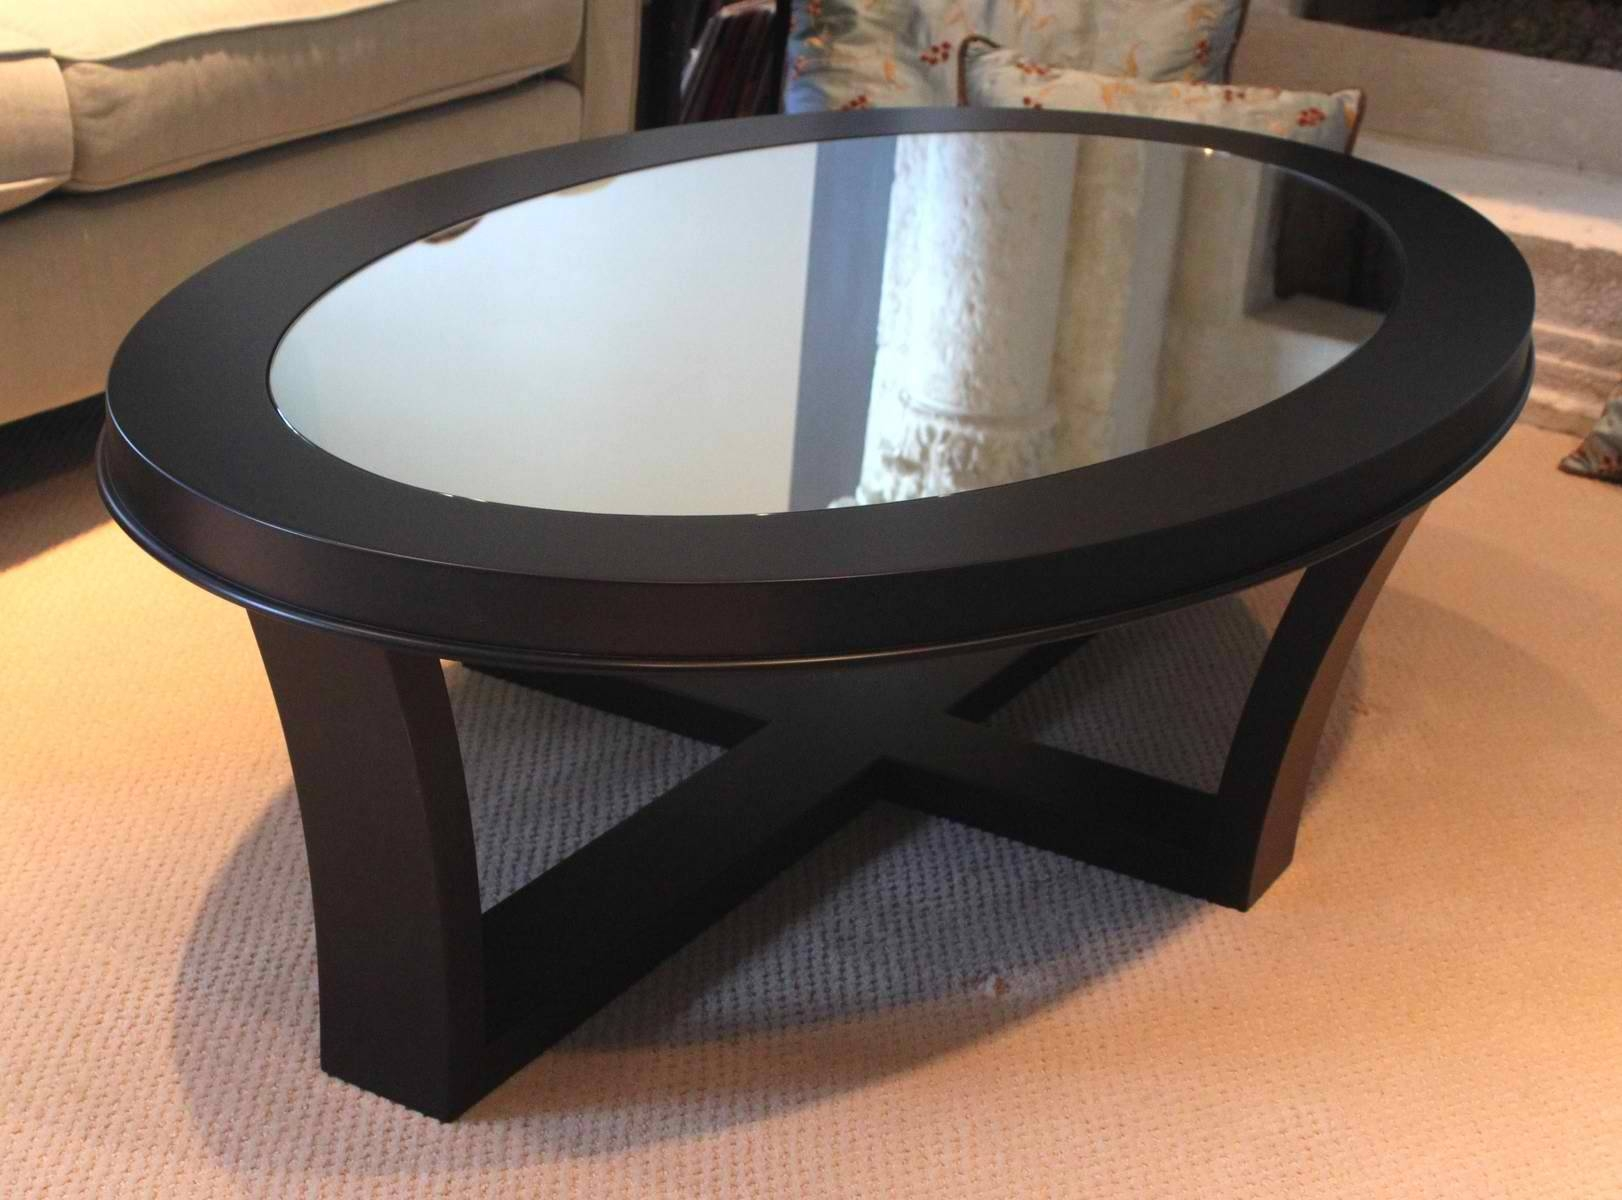 Bedside Tables Square Glass And Wood Coffee Tables Home Design In Clock Coffee Tables Round Shaped (View 4 of 30)